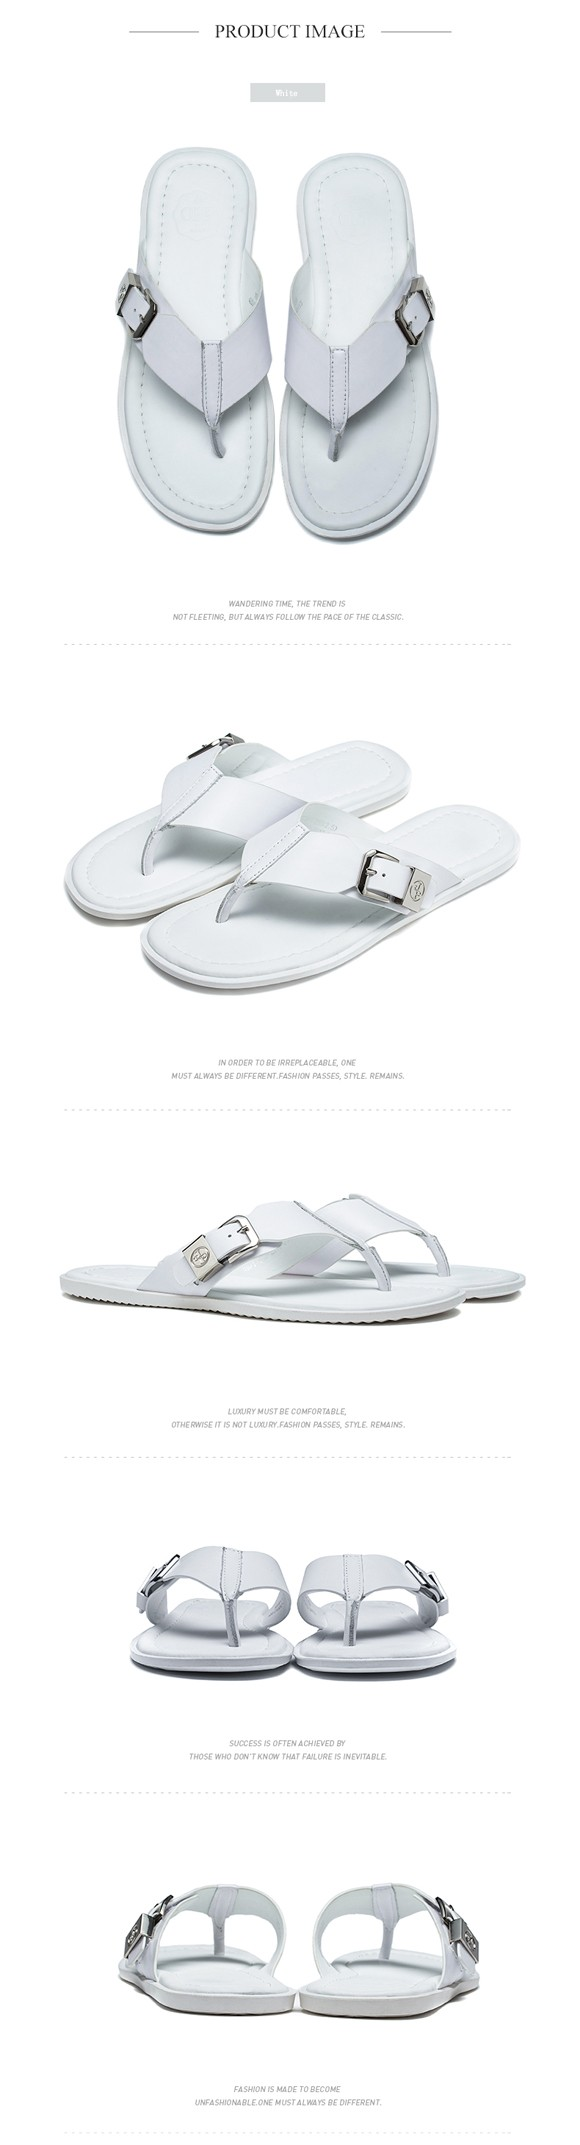 f2fb34ccbfd15a Wholesale OPP Men S Casual Fashion Flip Flops Leather Sandals Non ...